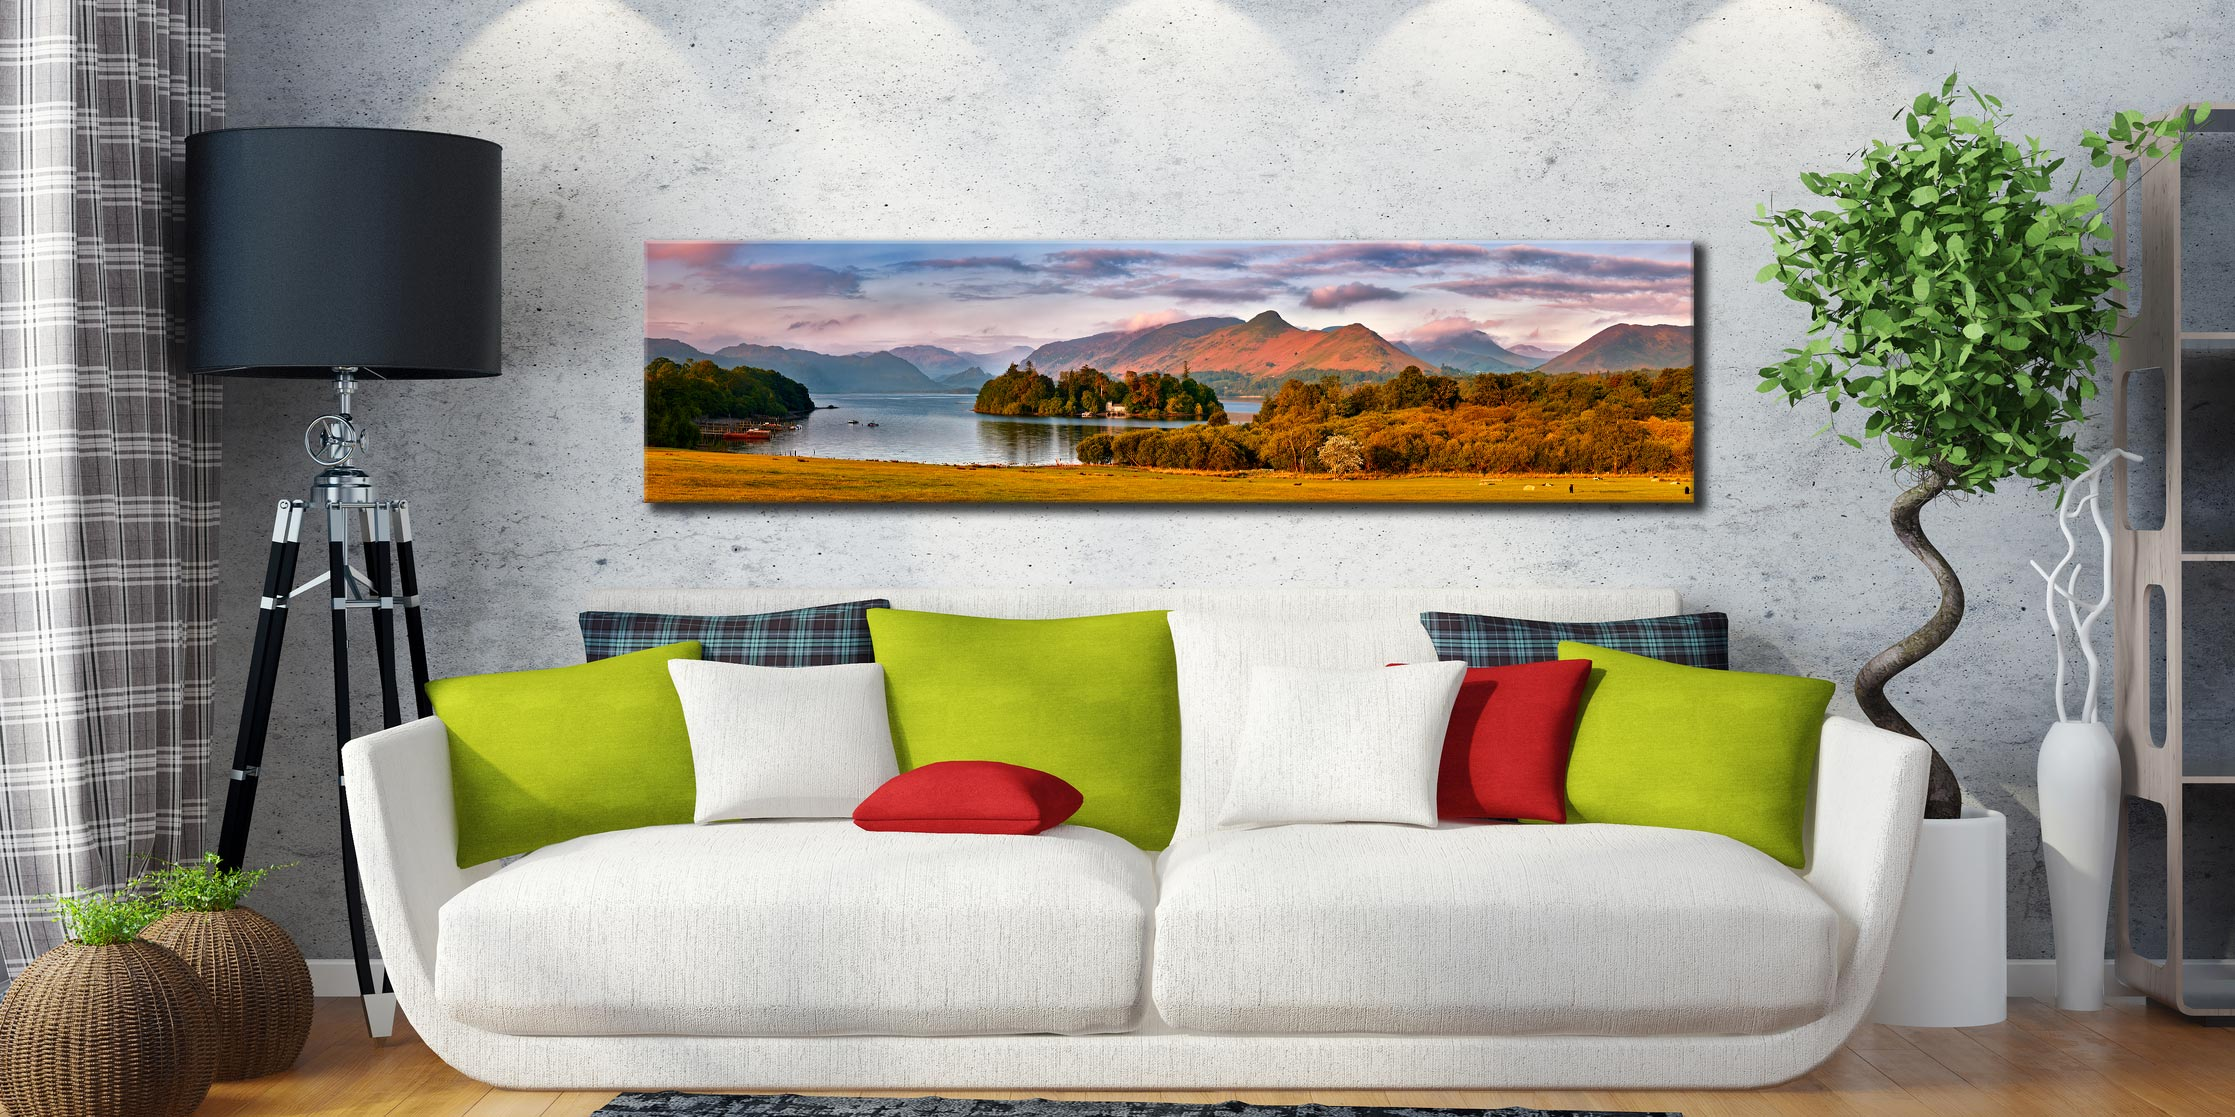 Derwent Water and Catbells in Morning Light - Lake District Canvas on Wall